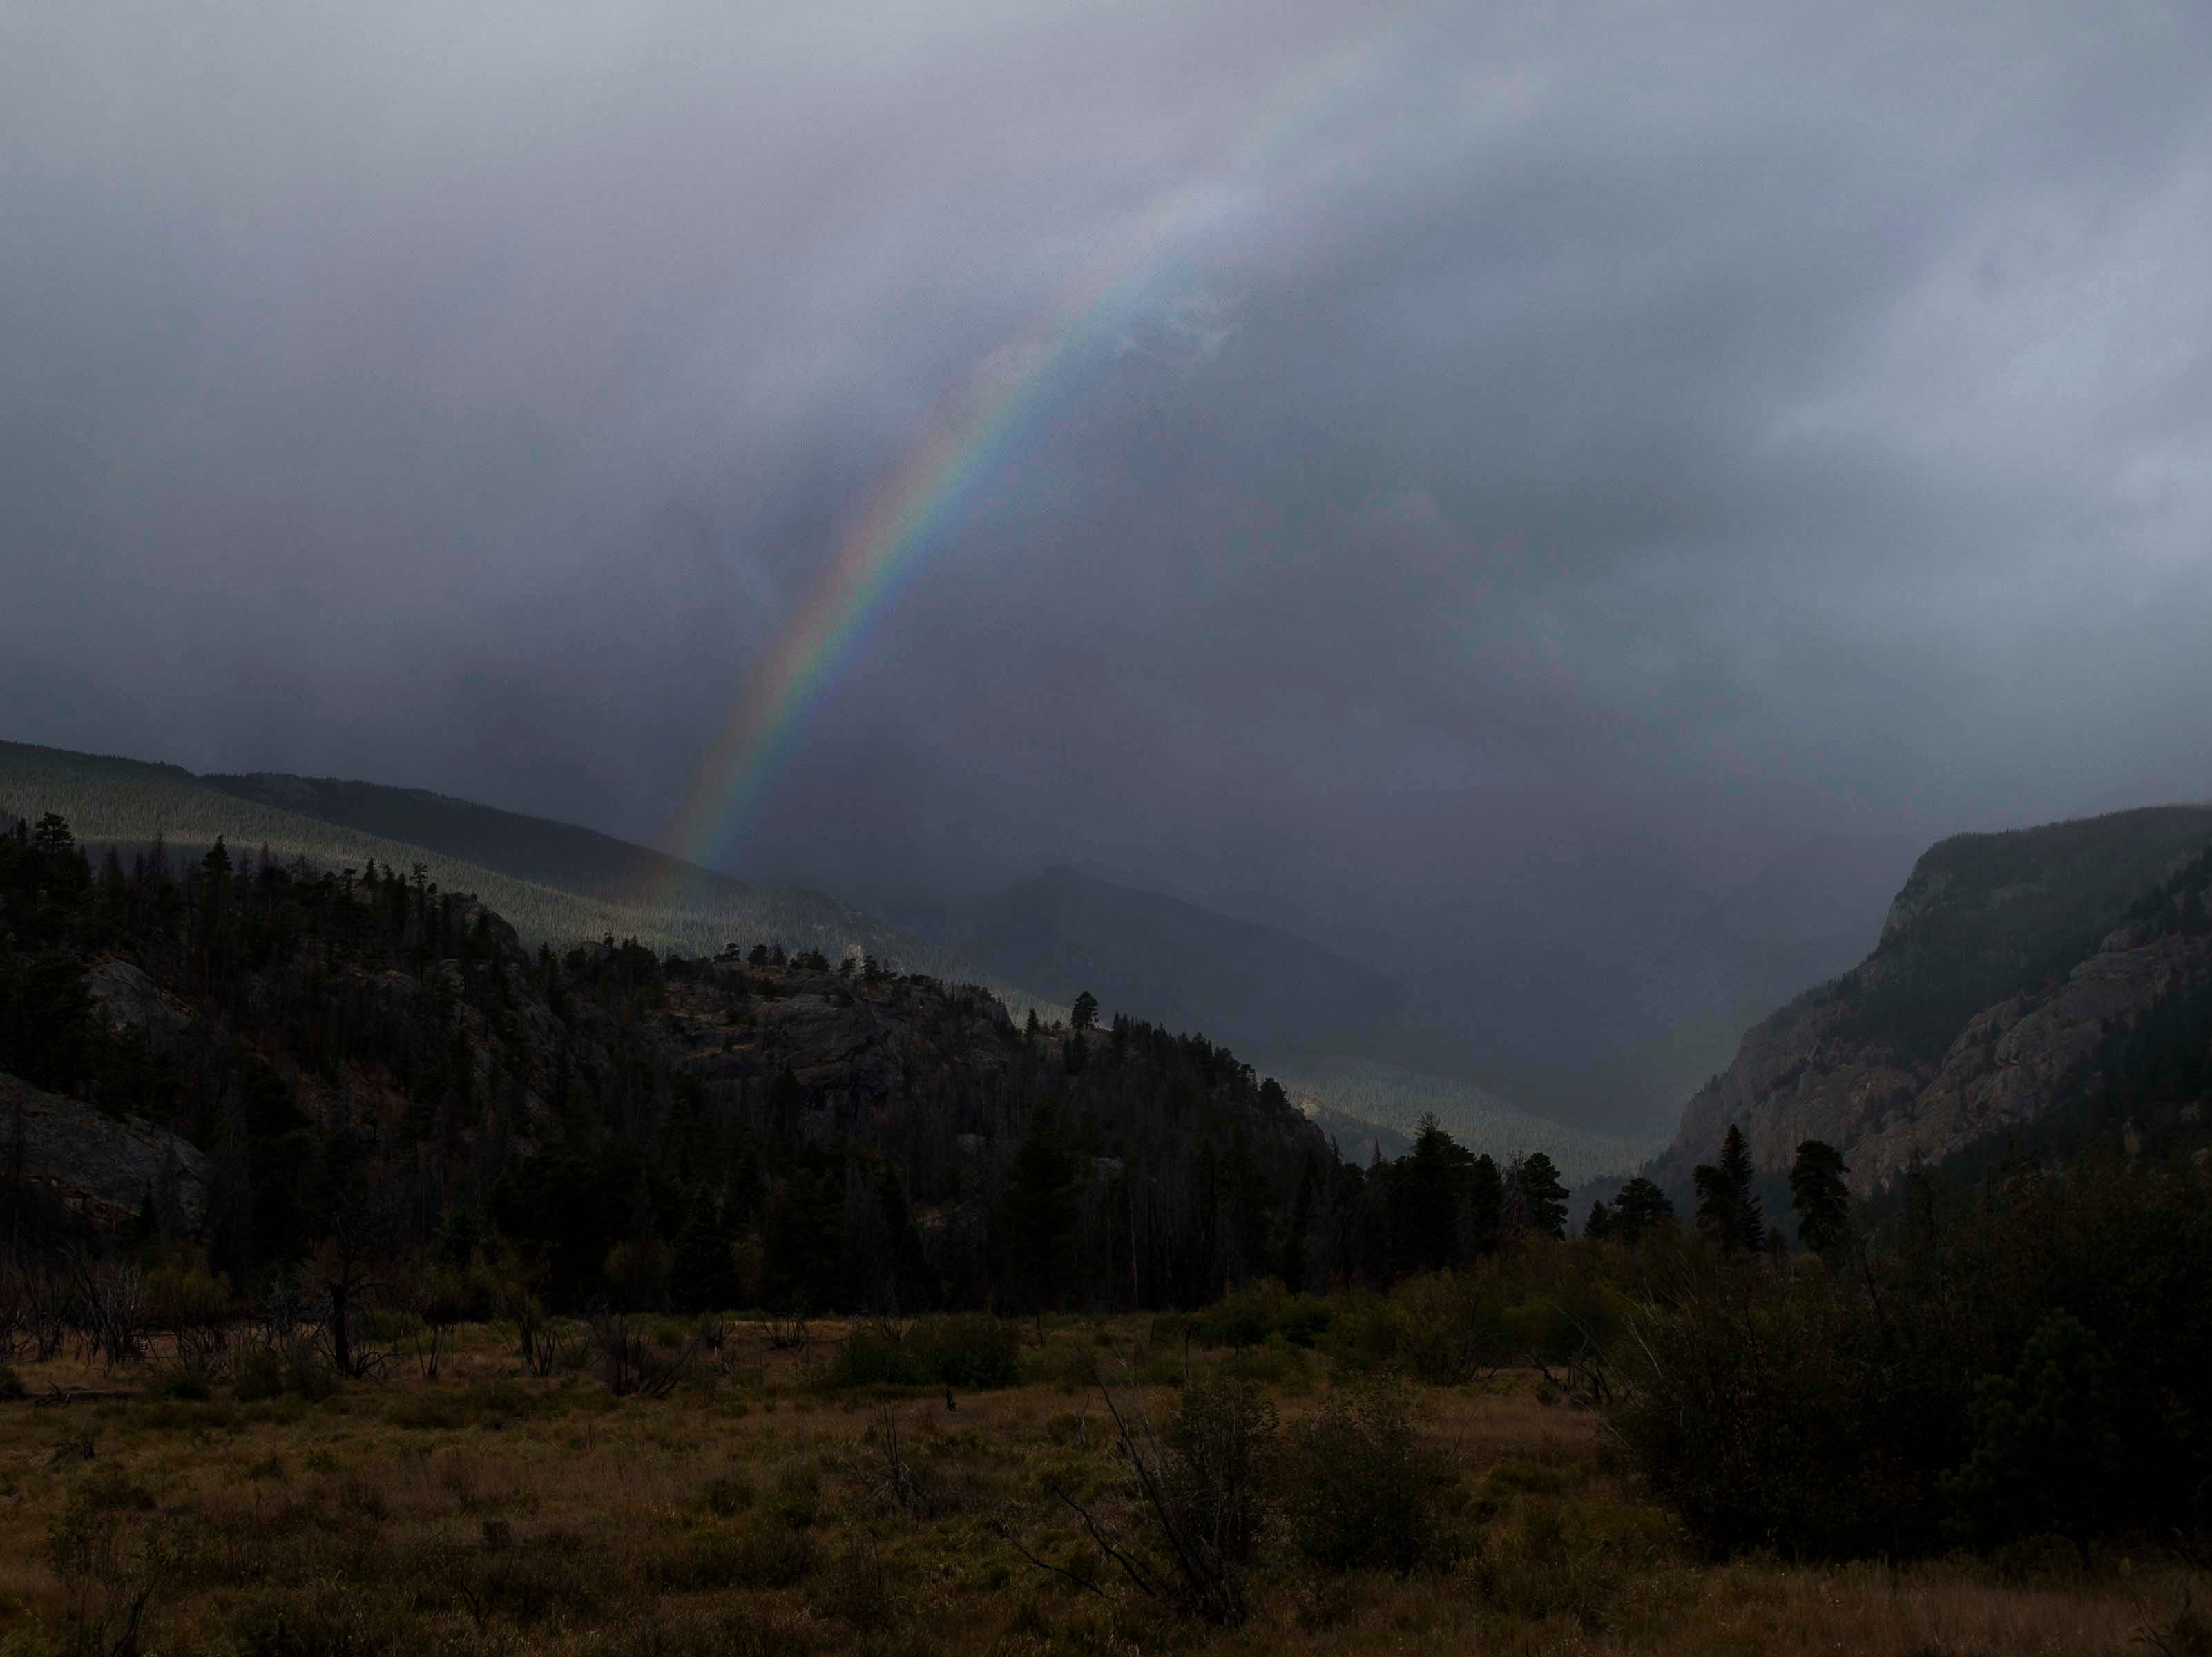 A rainbow forms in a morning rain shower near Moraine Park on Monday, Sept. 24, 2018, at Rocky Mountain National Park in Colo.